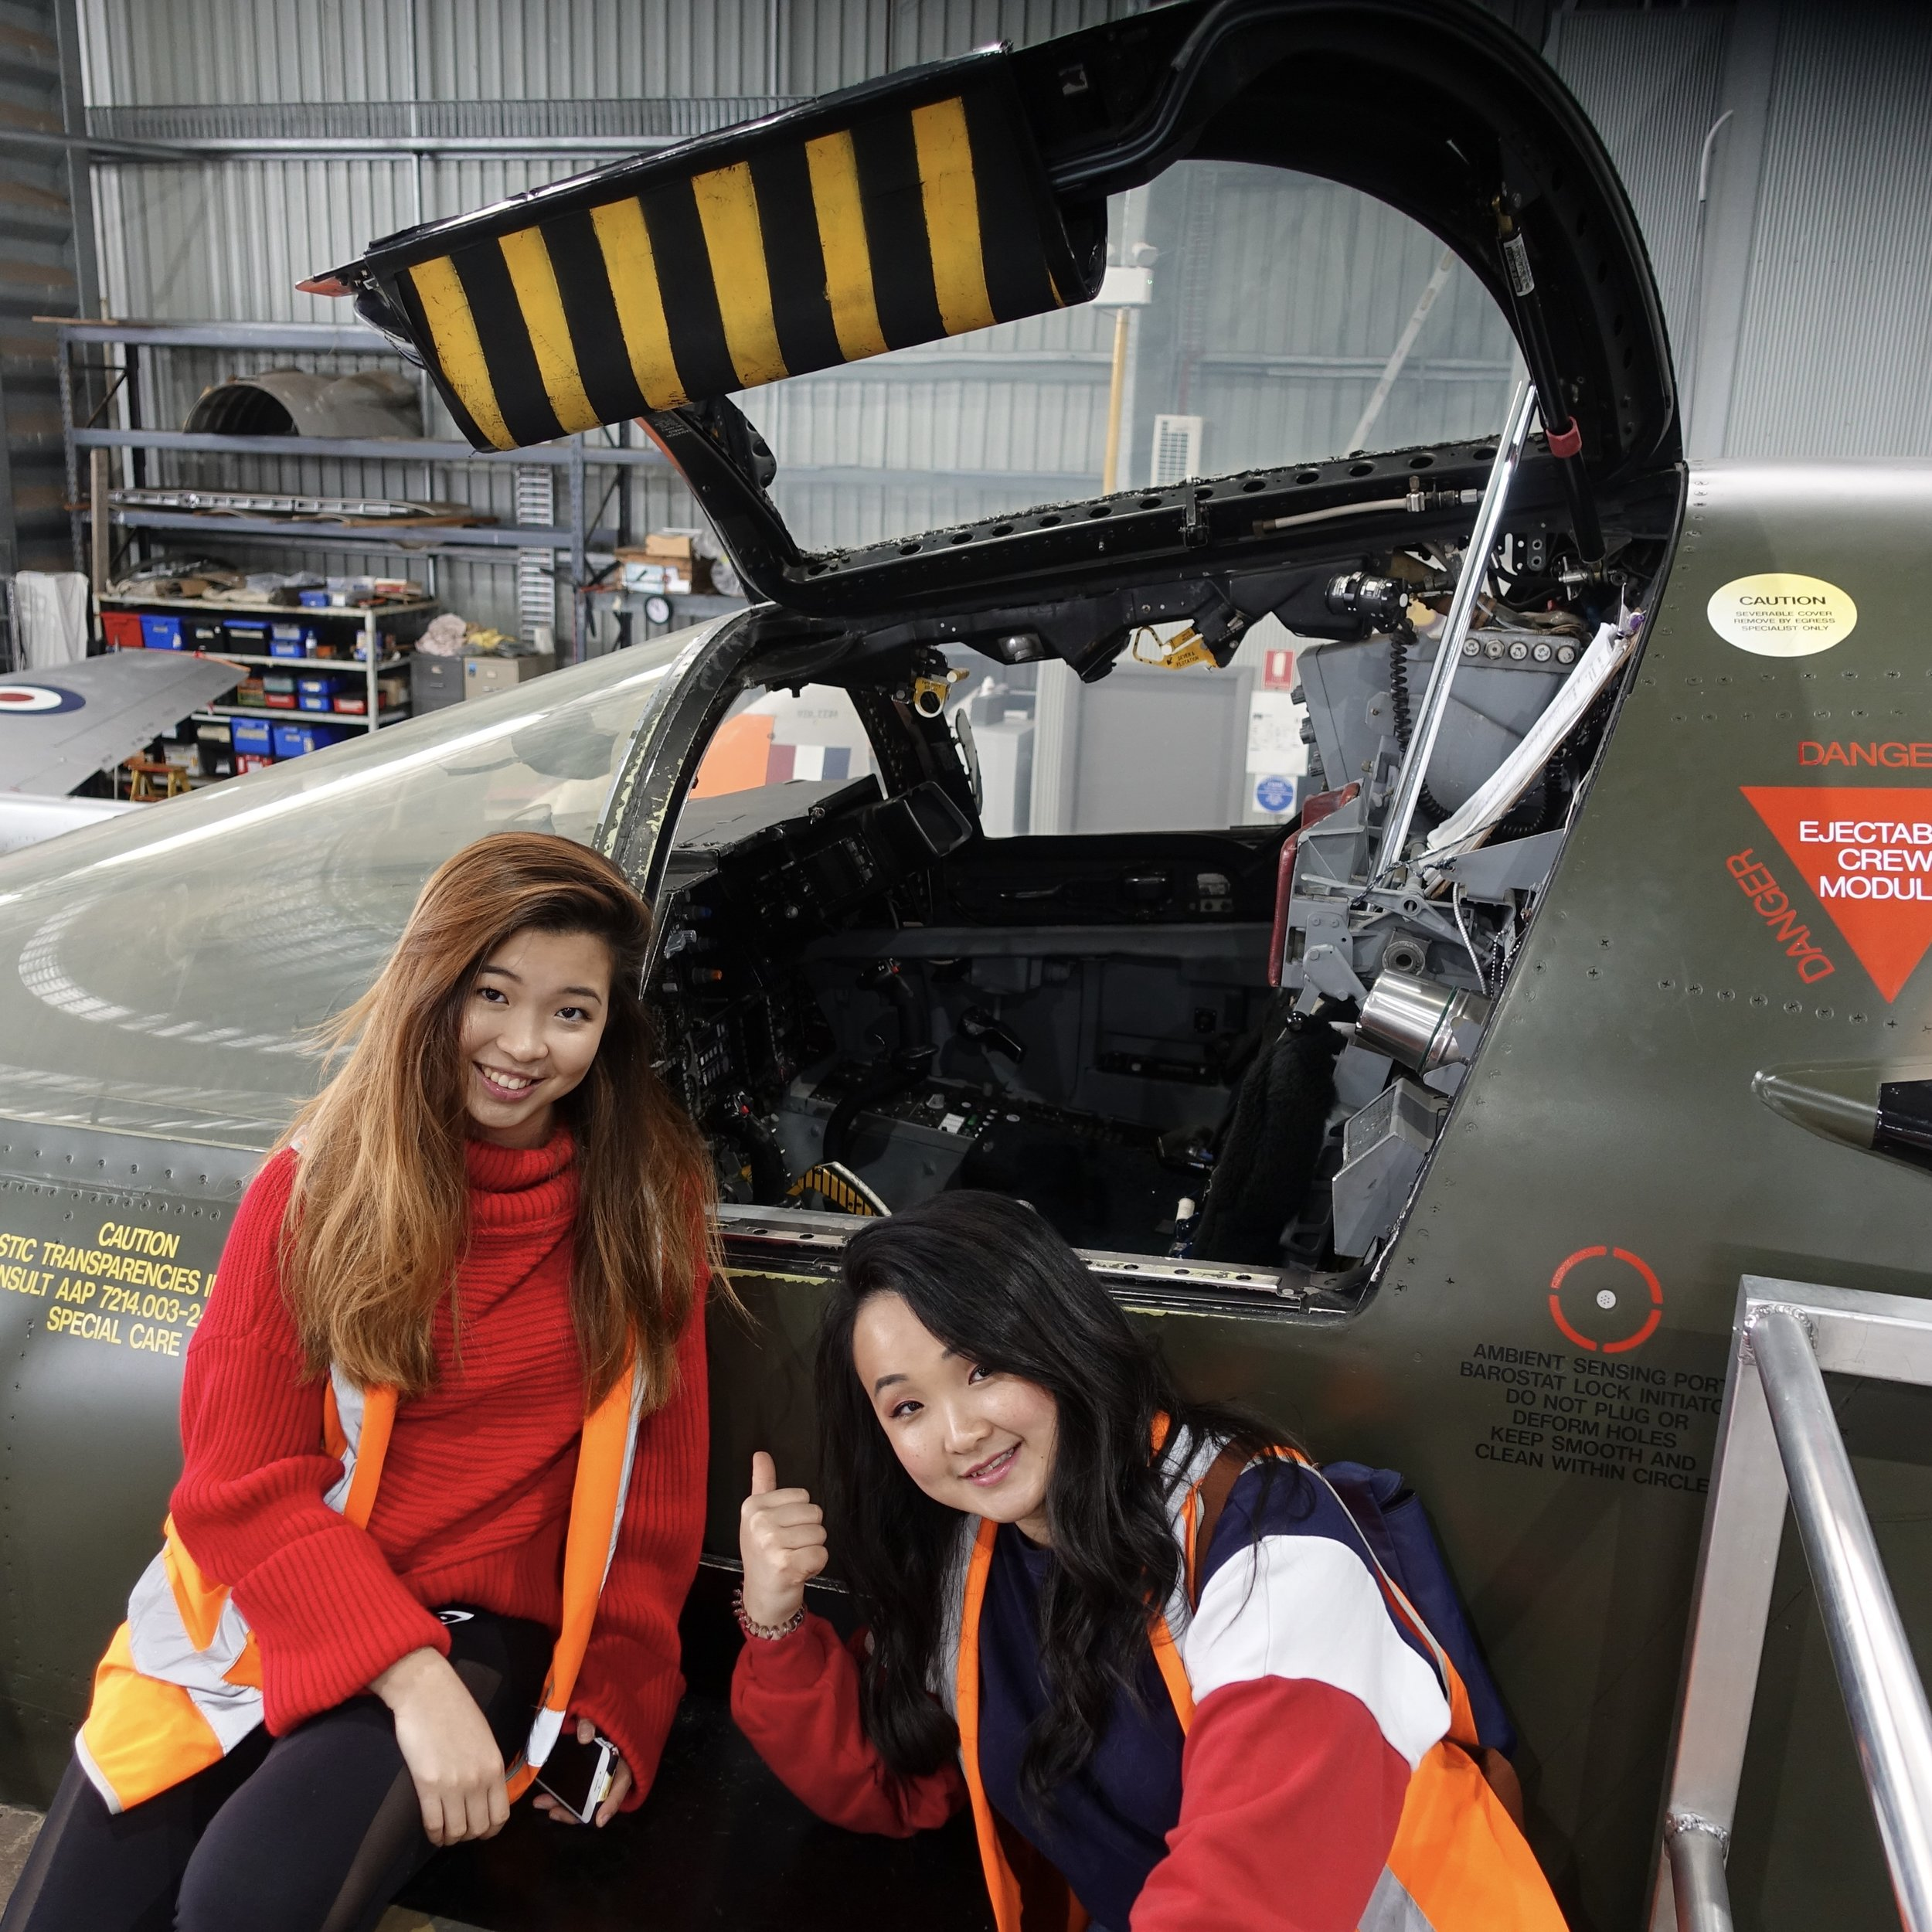 Things To Do In Shellharbour, NSW_HARS Aviation Musuem2.JPG